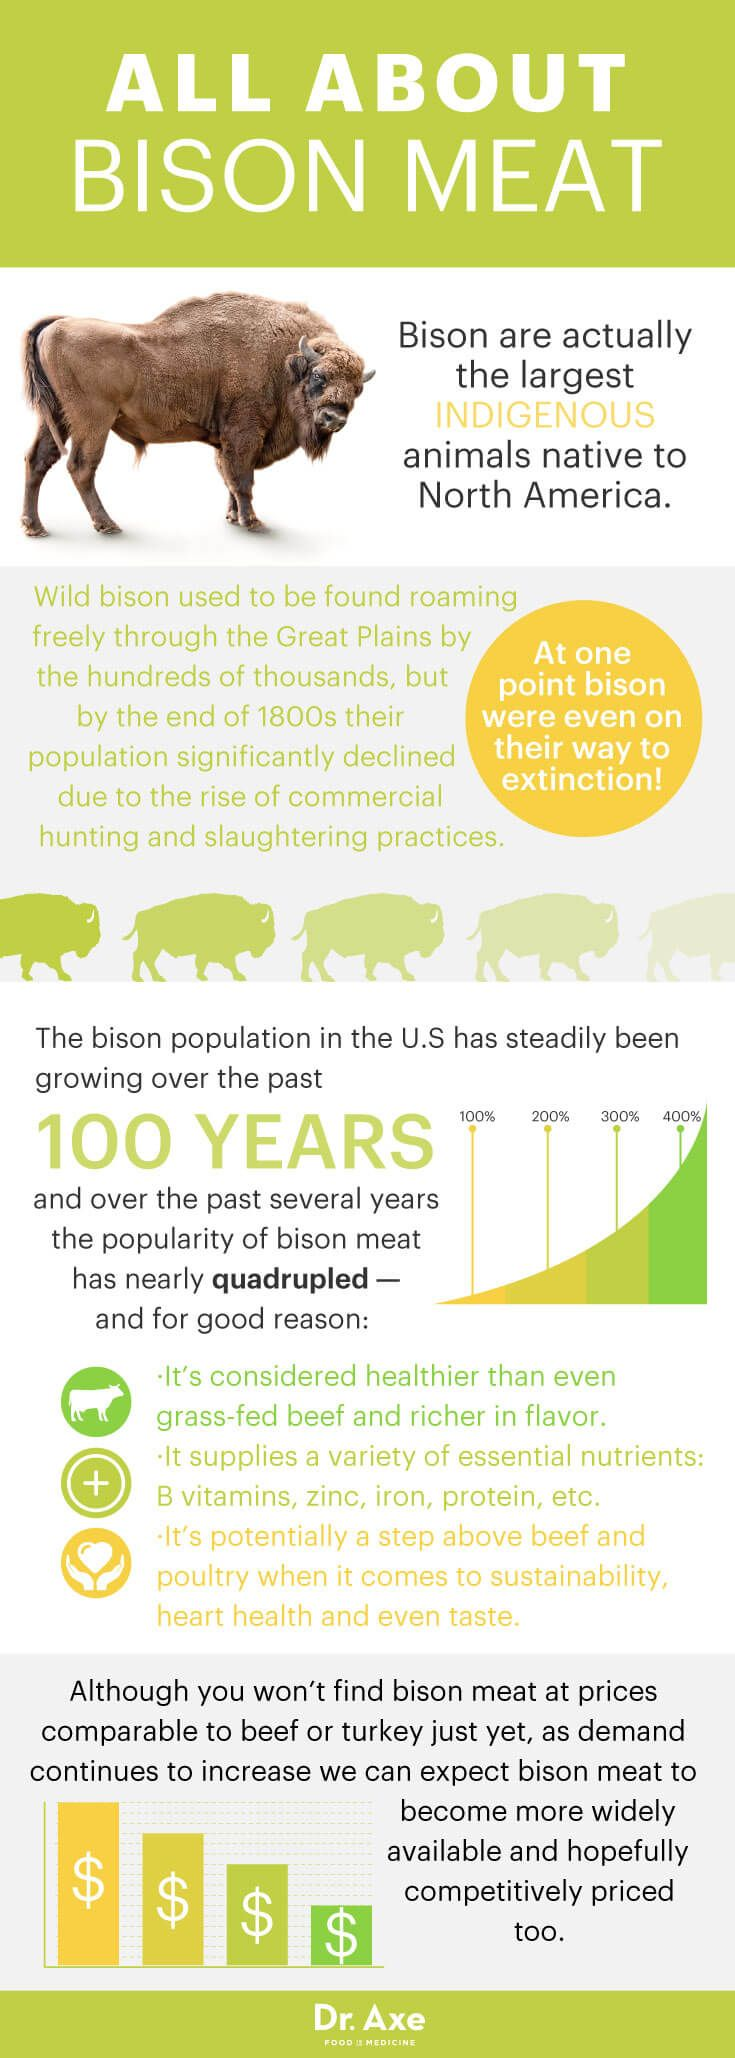 All about bison meat - Dr. Axe